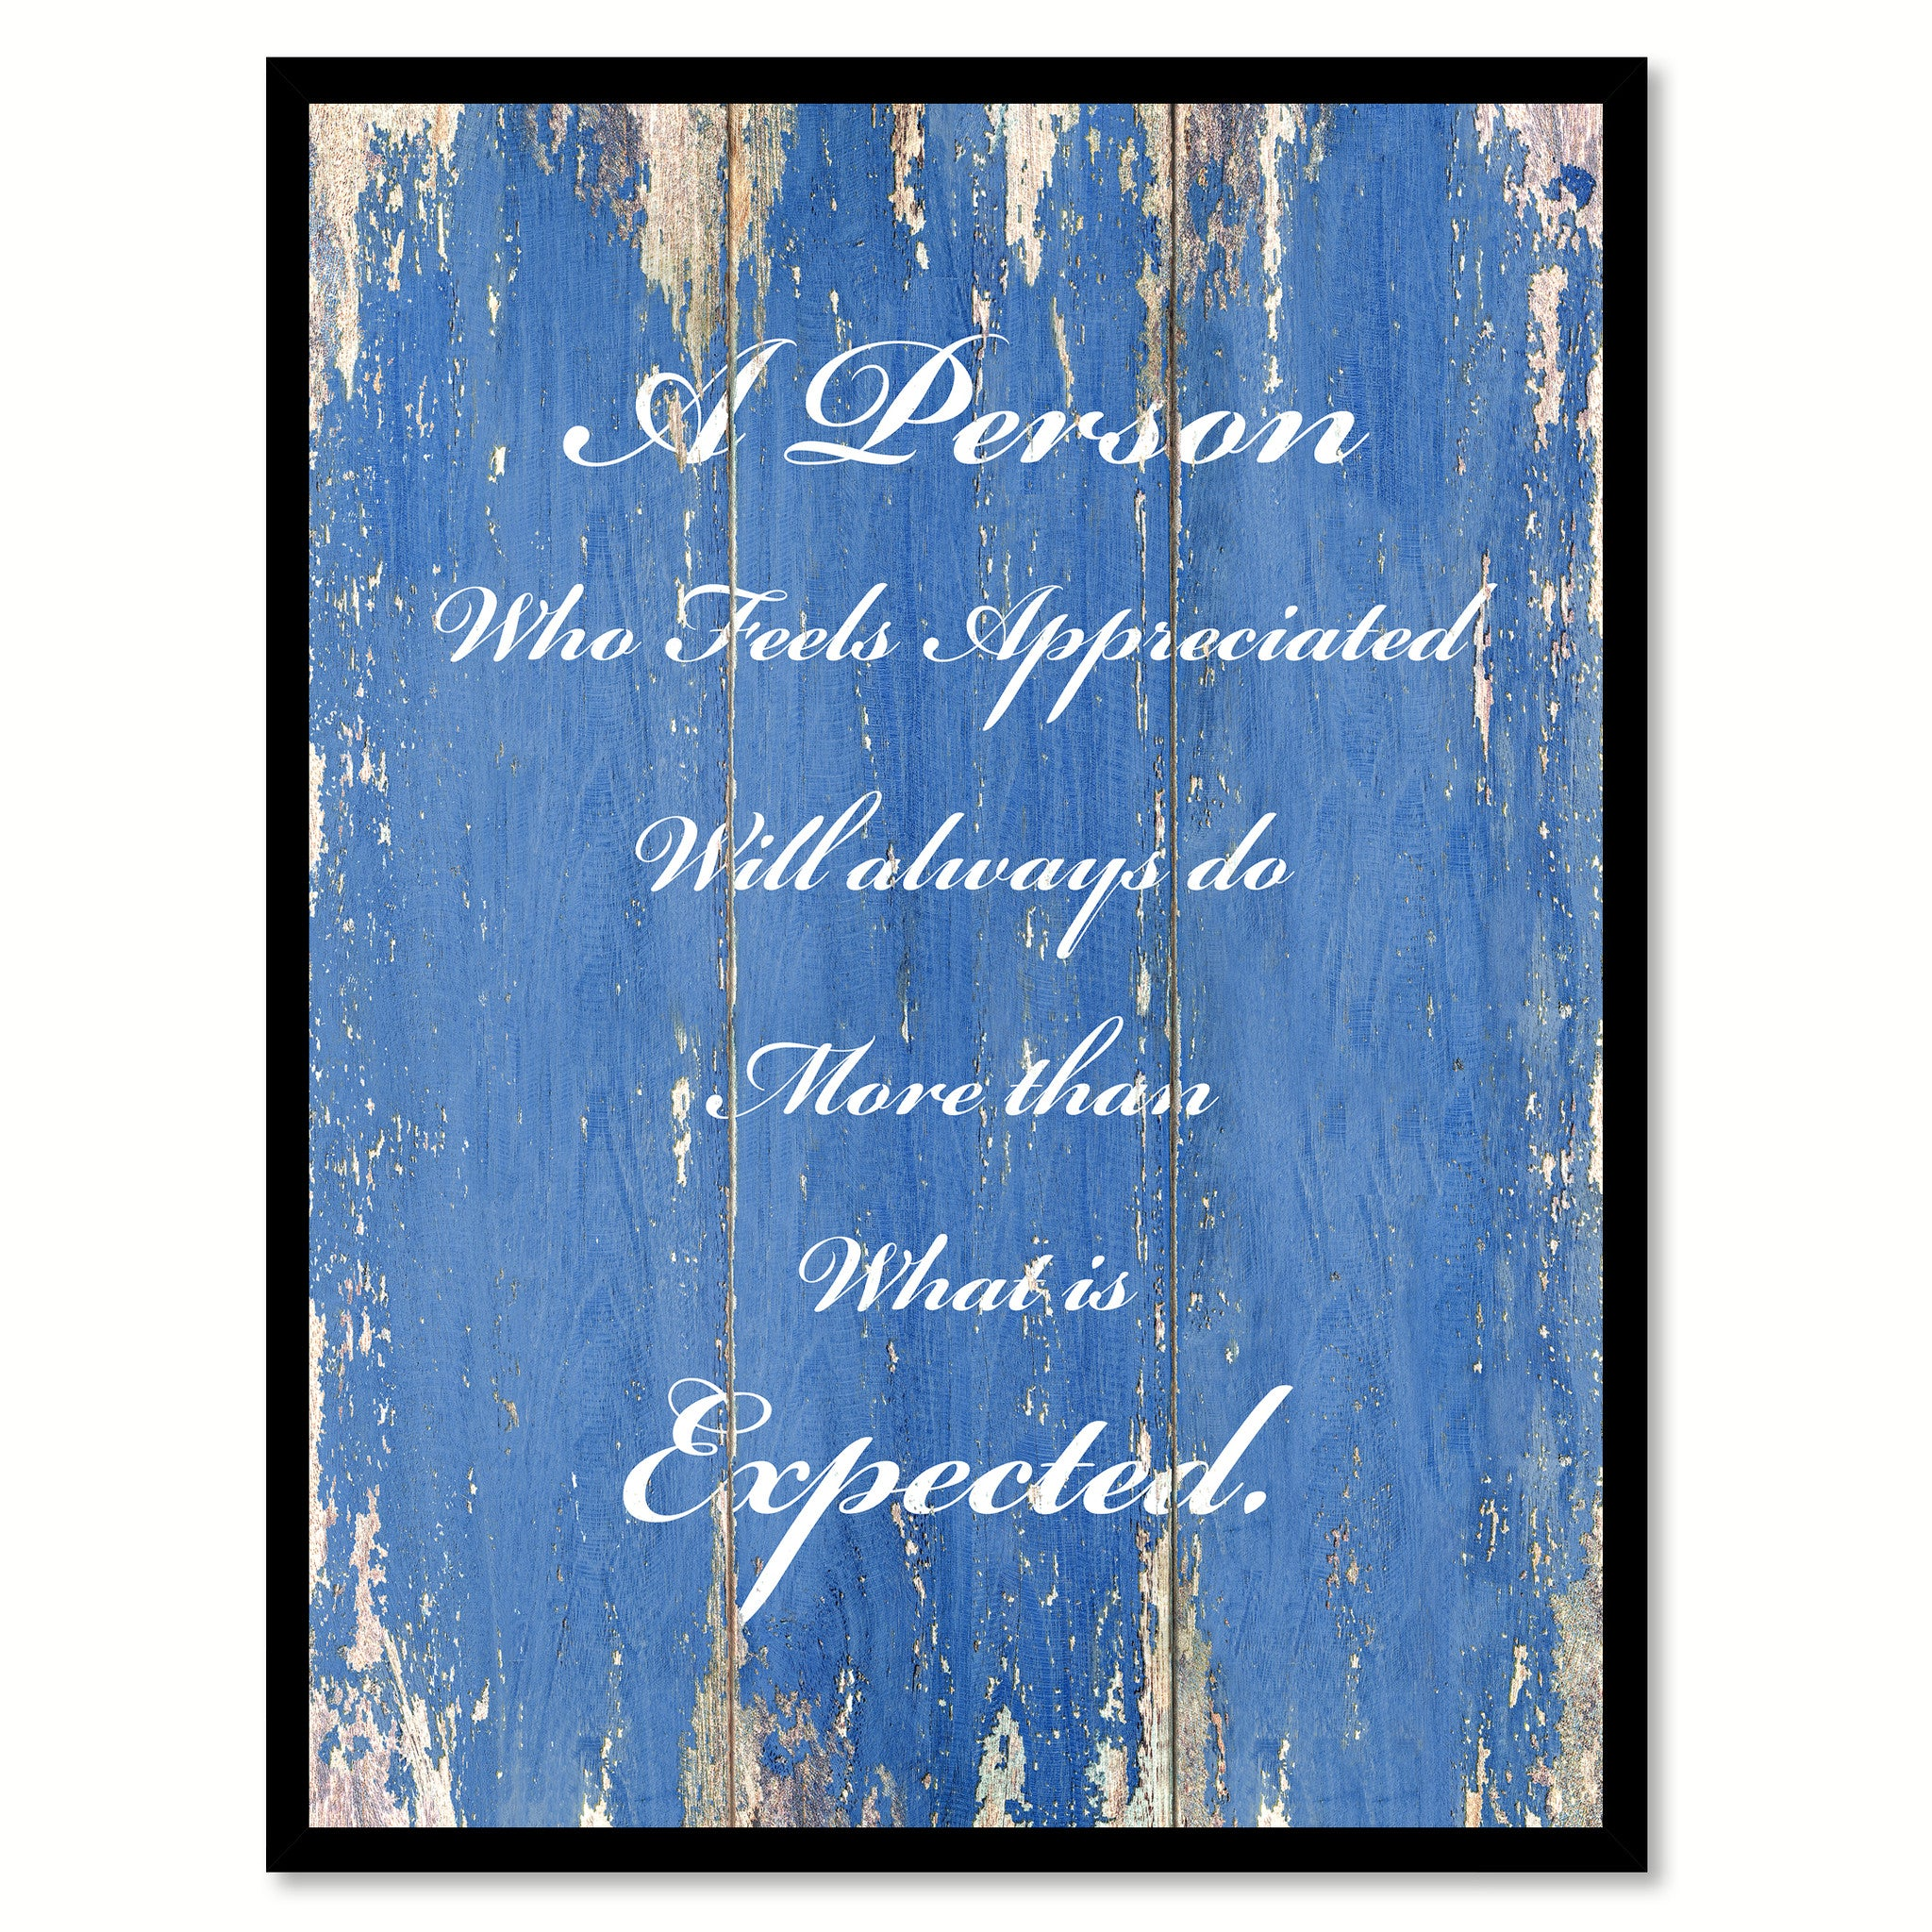 A Person Who feels Appreciated Inspirational Quote Saying Gift Ideas Home Décor Wall Art